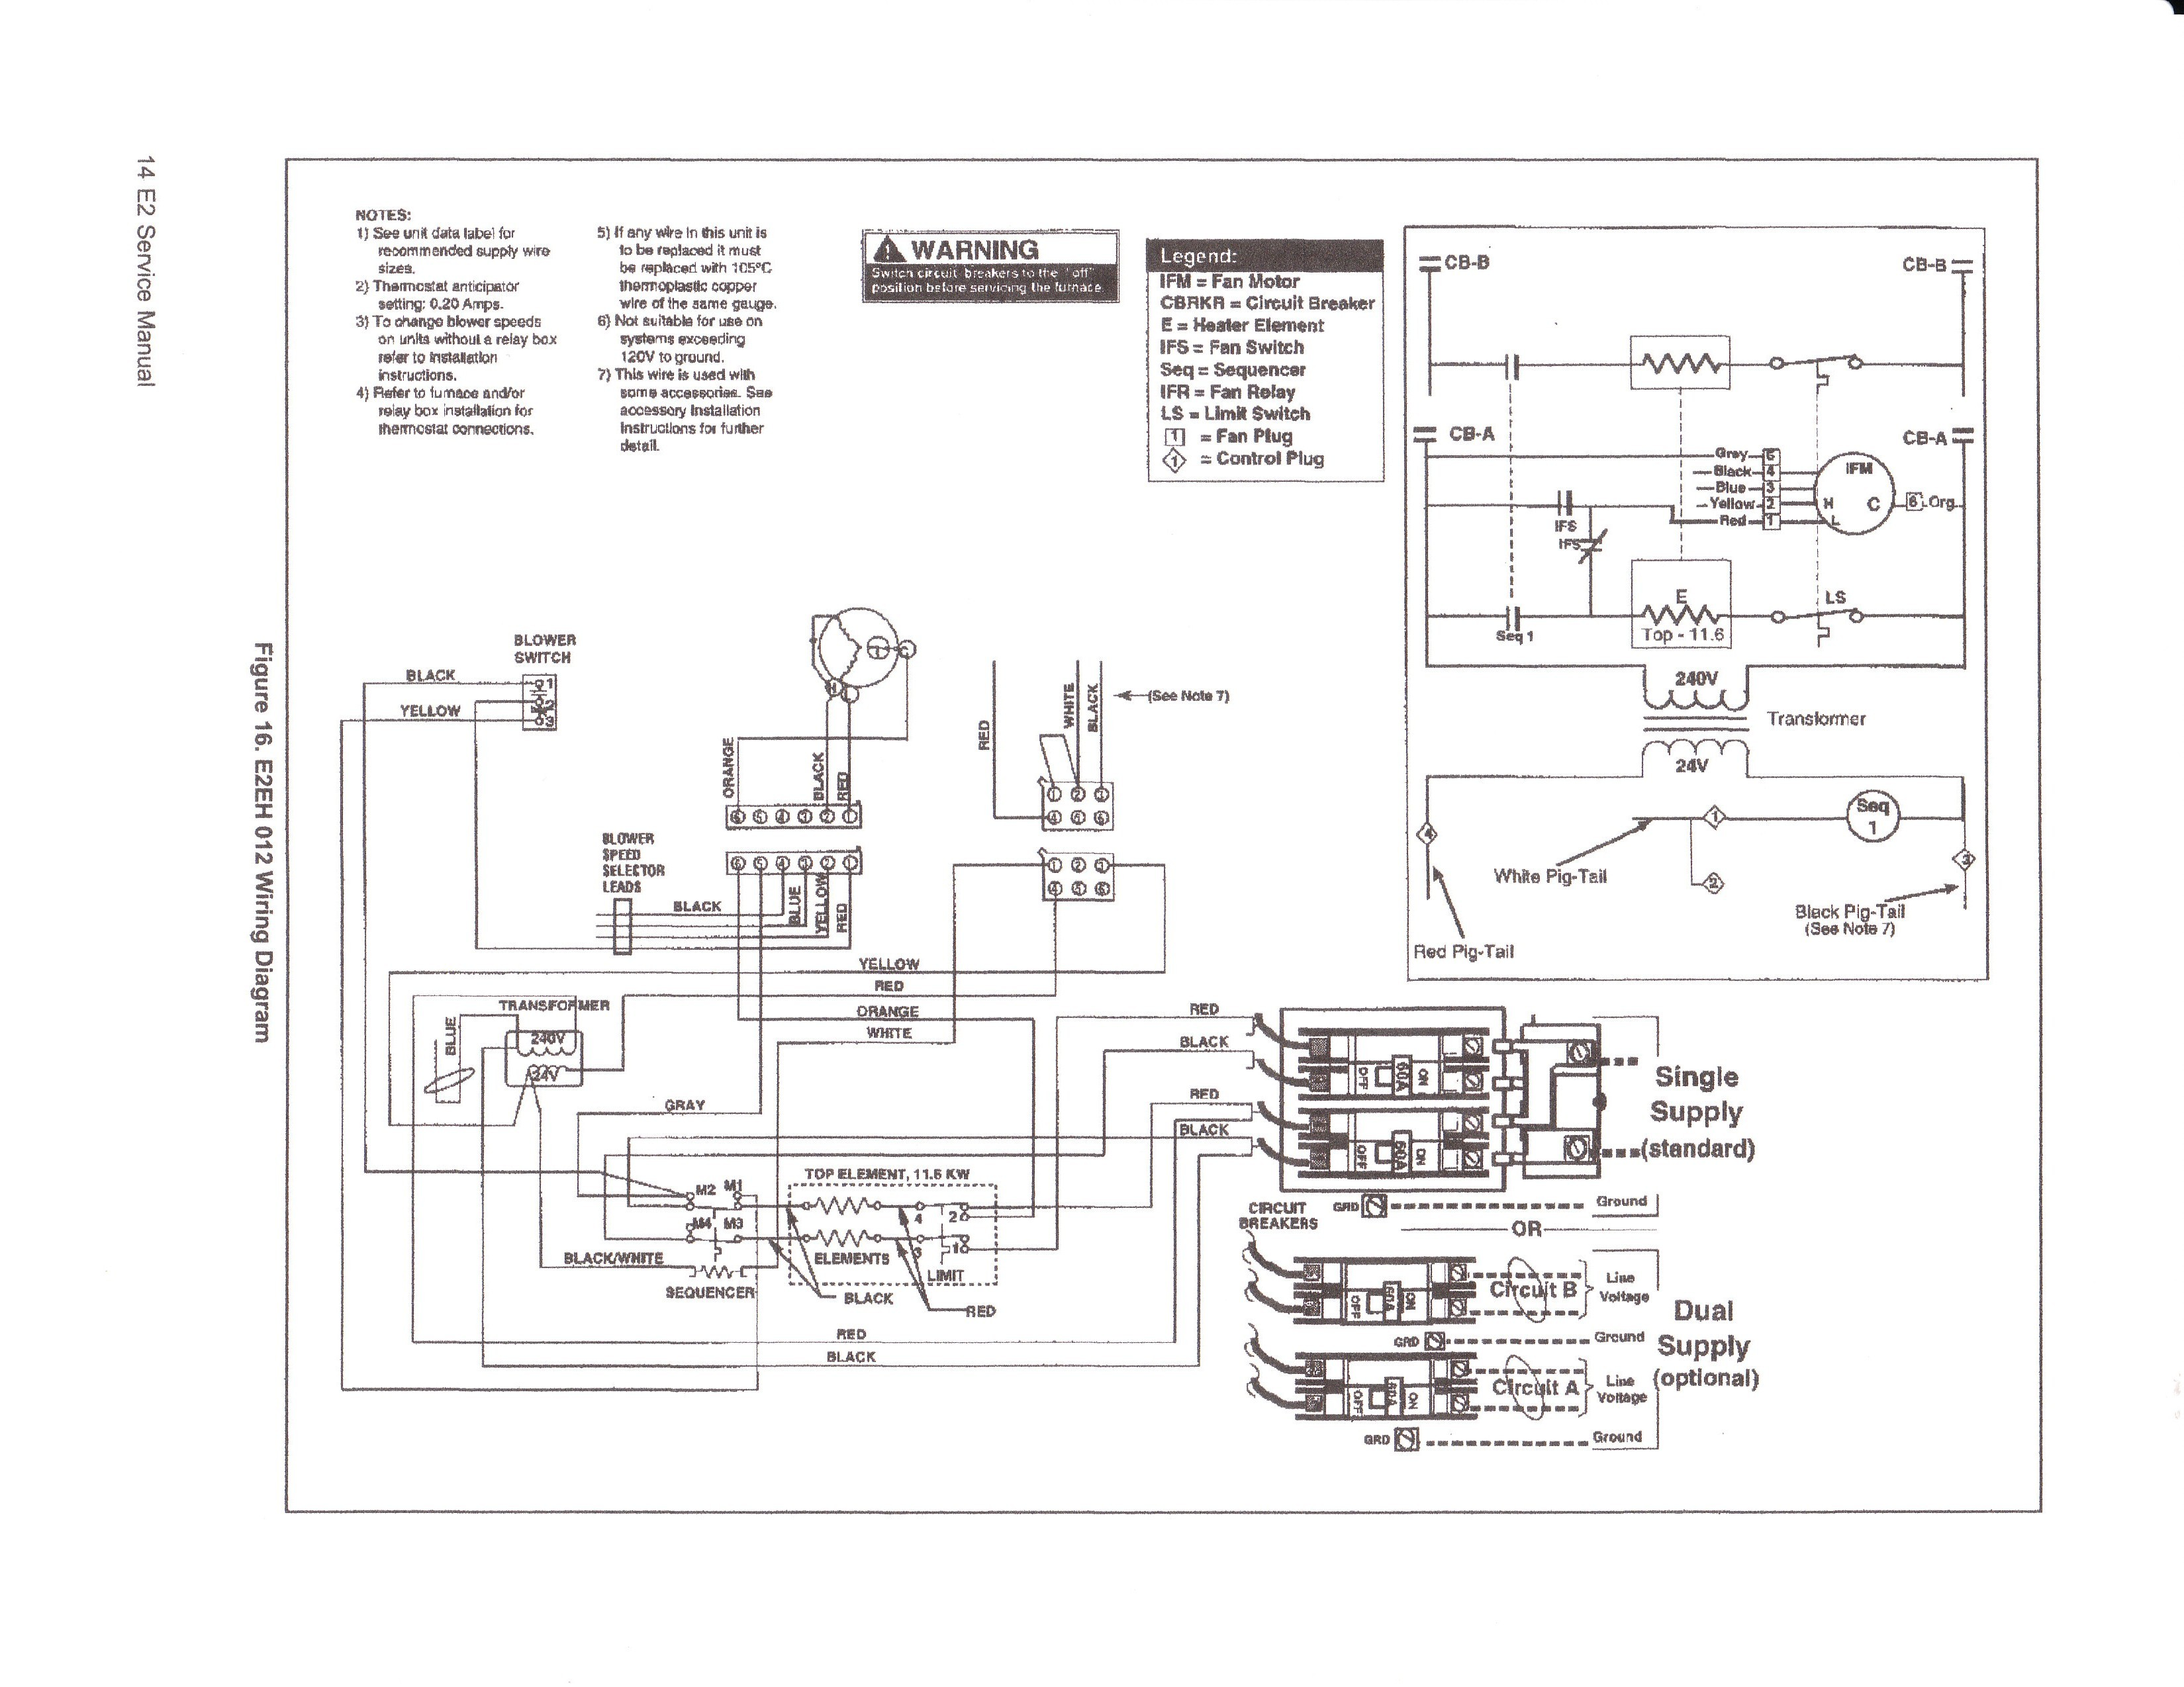 Oil Furnace Wiring Diagram Wiring Diagram Electric Furnace Wire Goodman to Ripping Diagrams Of Oil Furnace Wiring Diagram